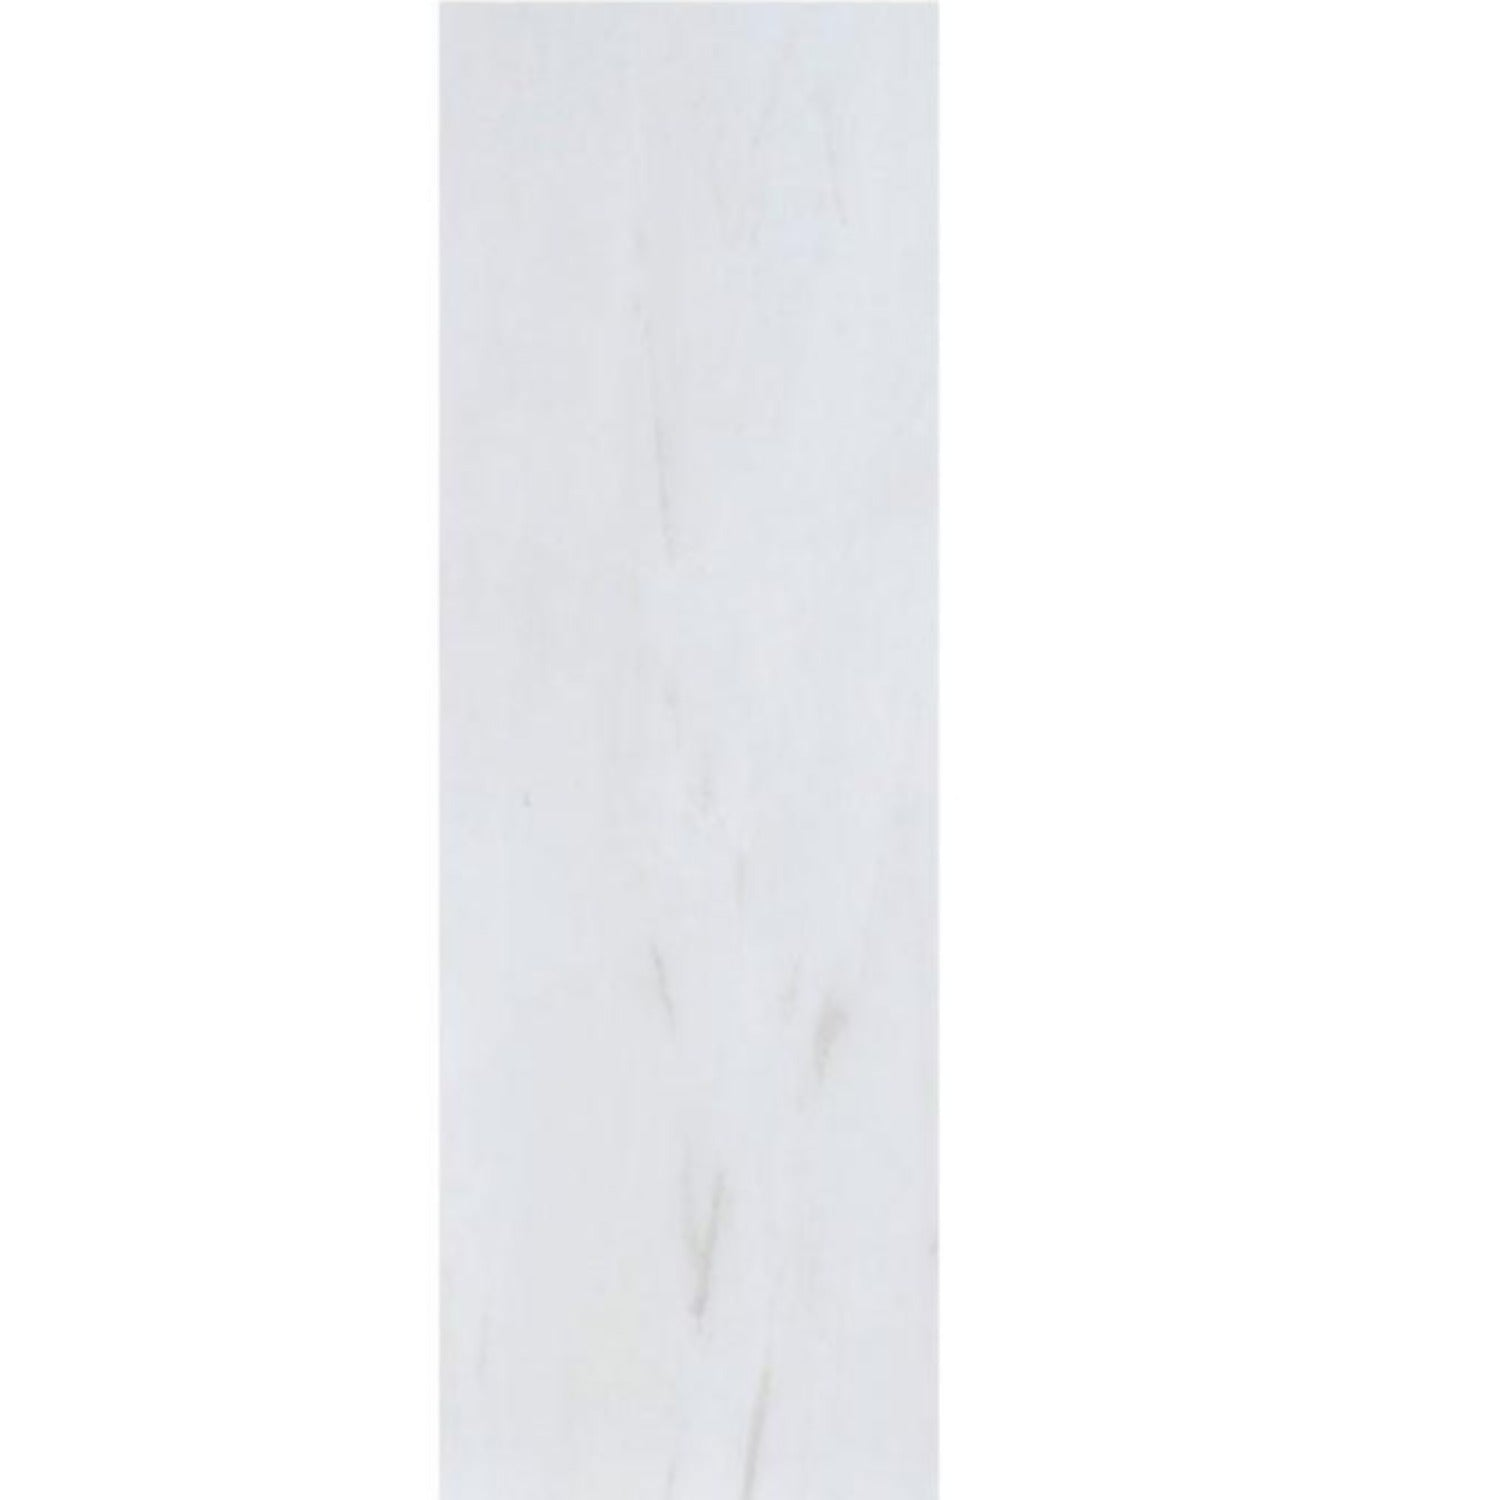 Dolomite 3x12 Polished Marble Tile